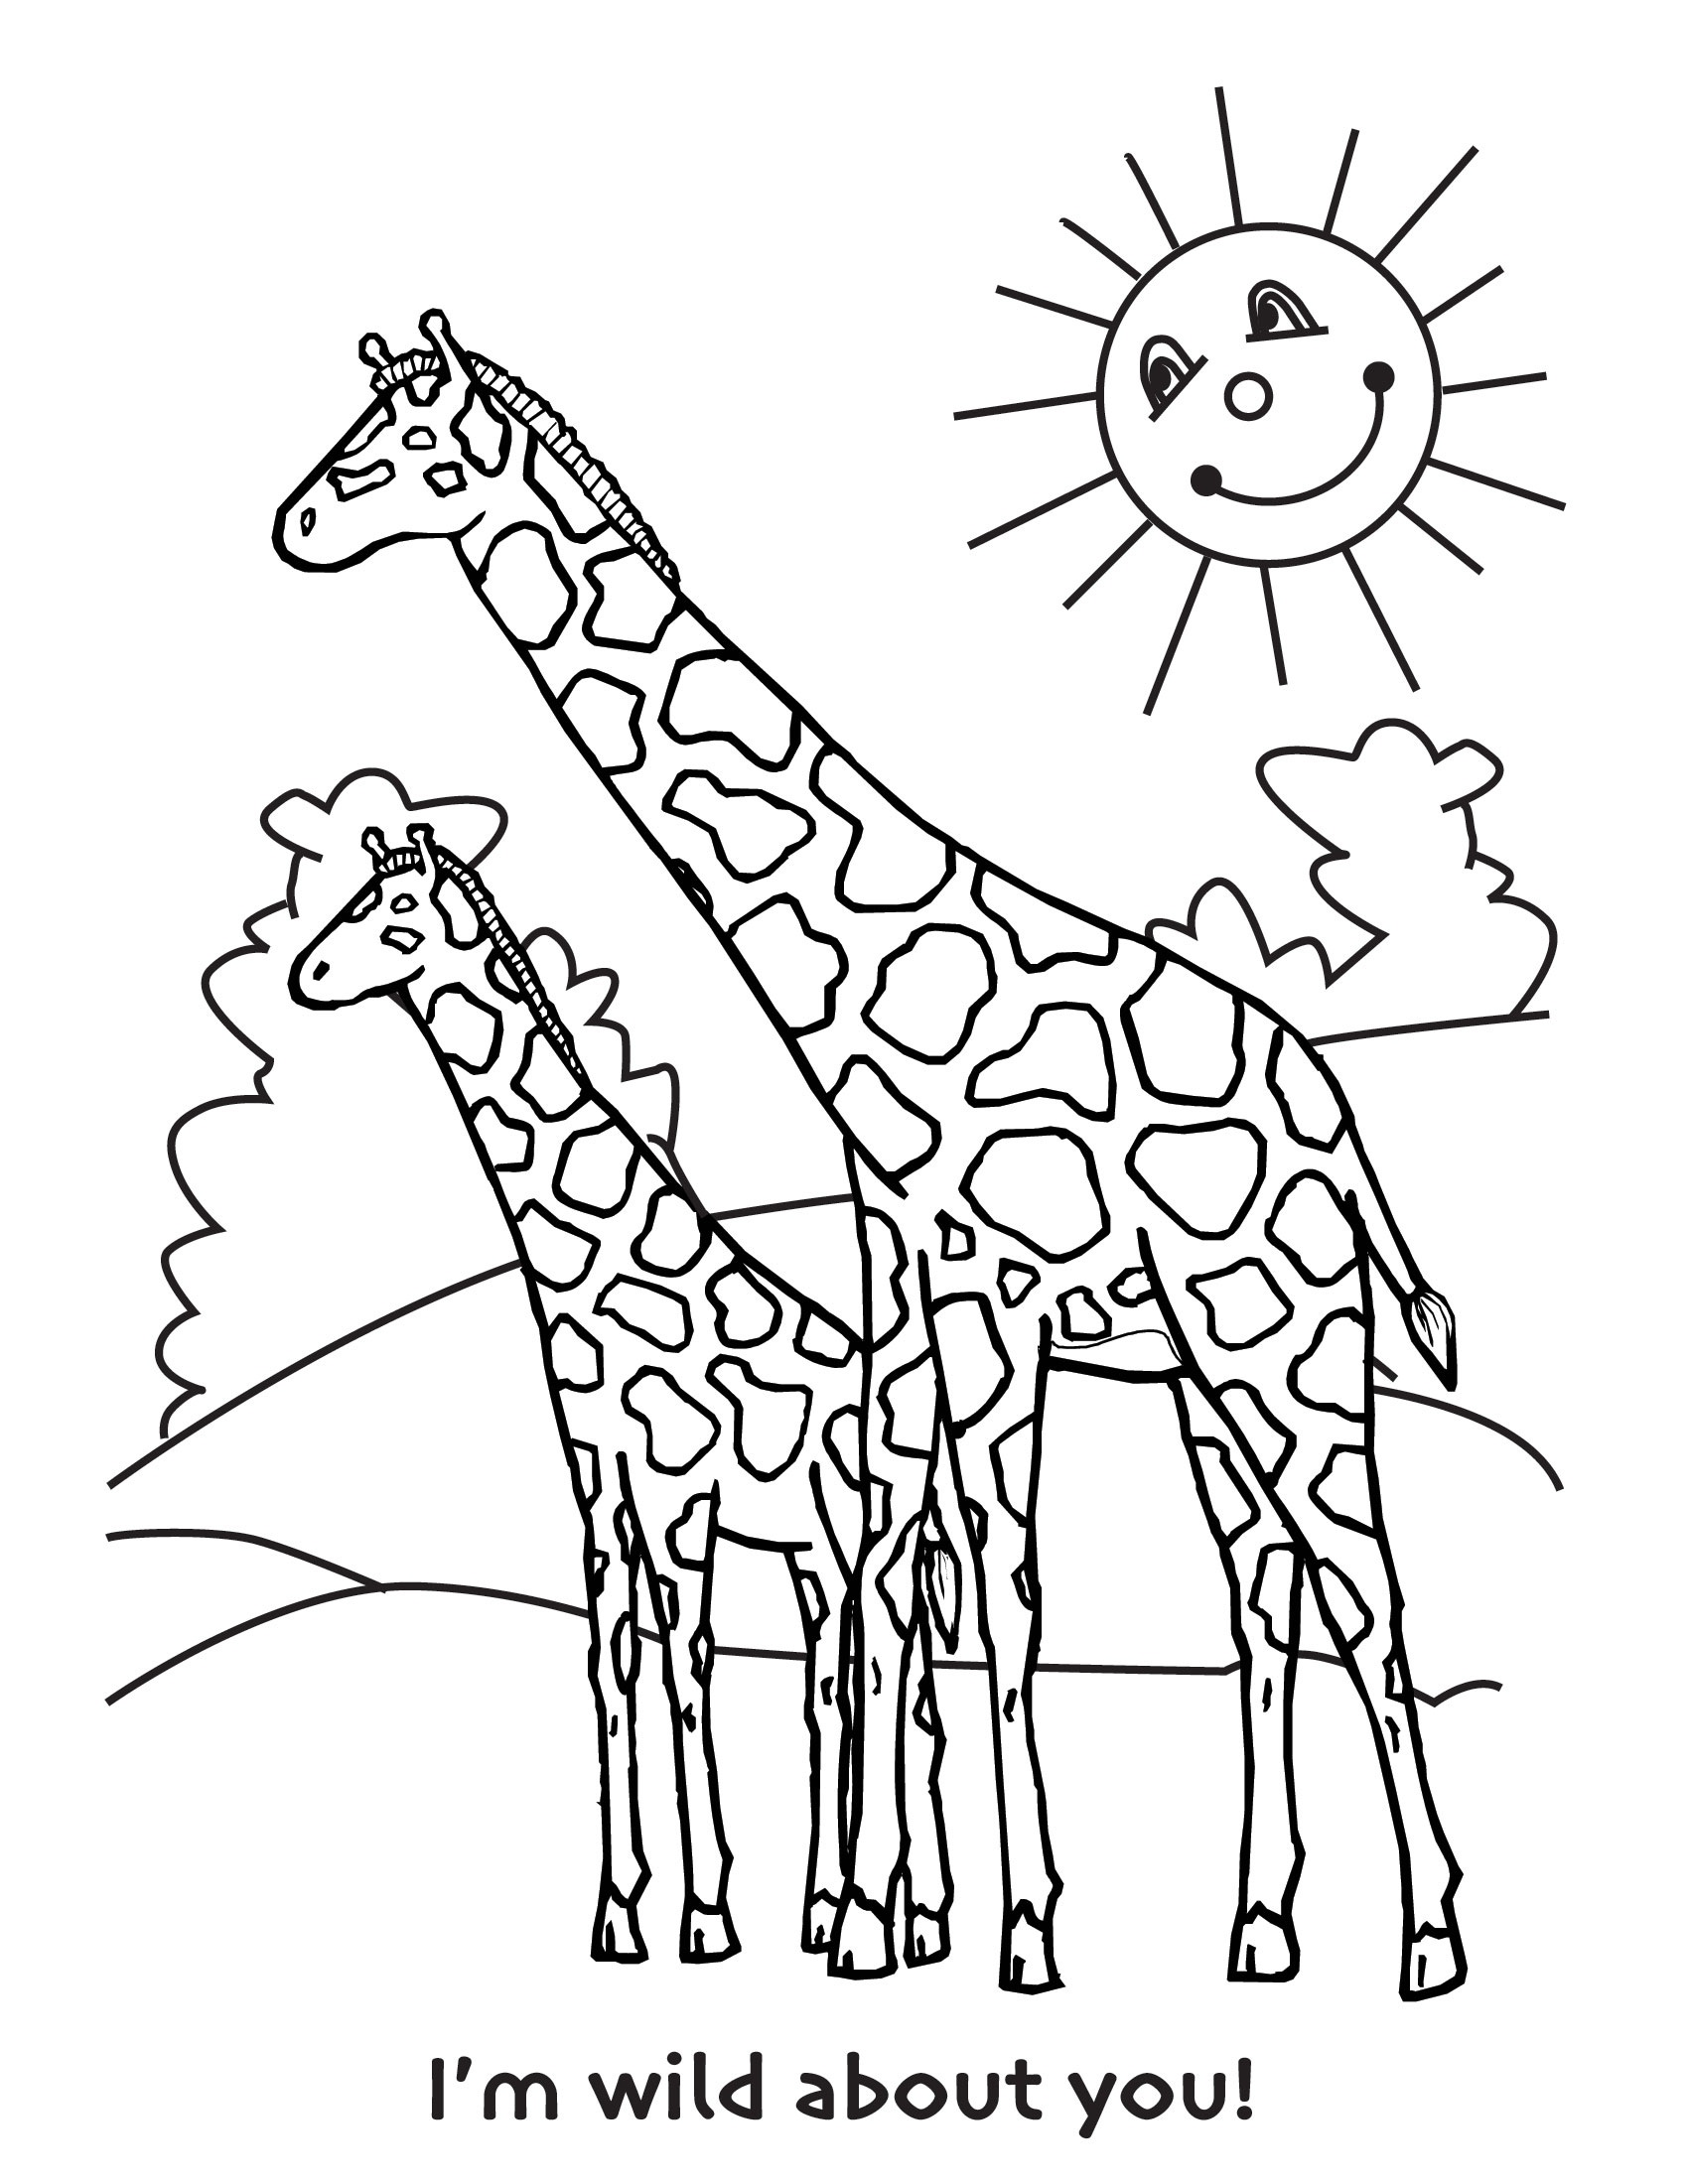 7 best images of cute giraffe coloring pages printable for Coloring pages of baby giraffes